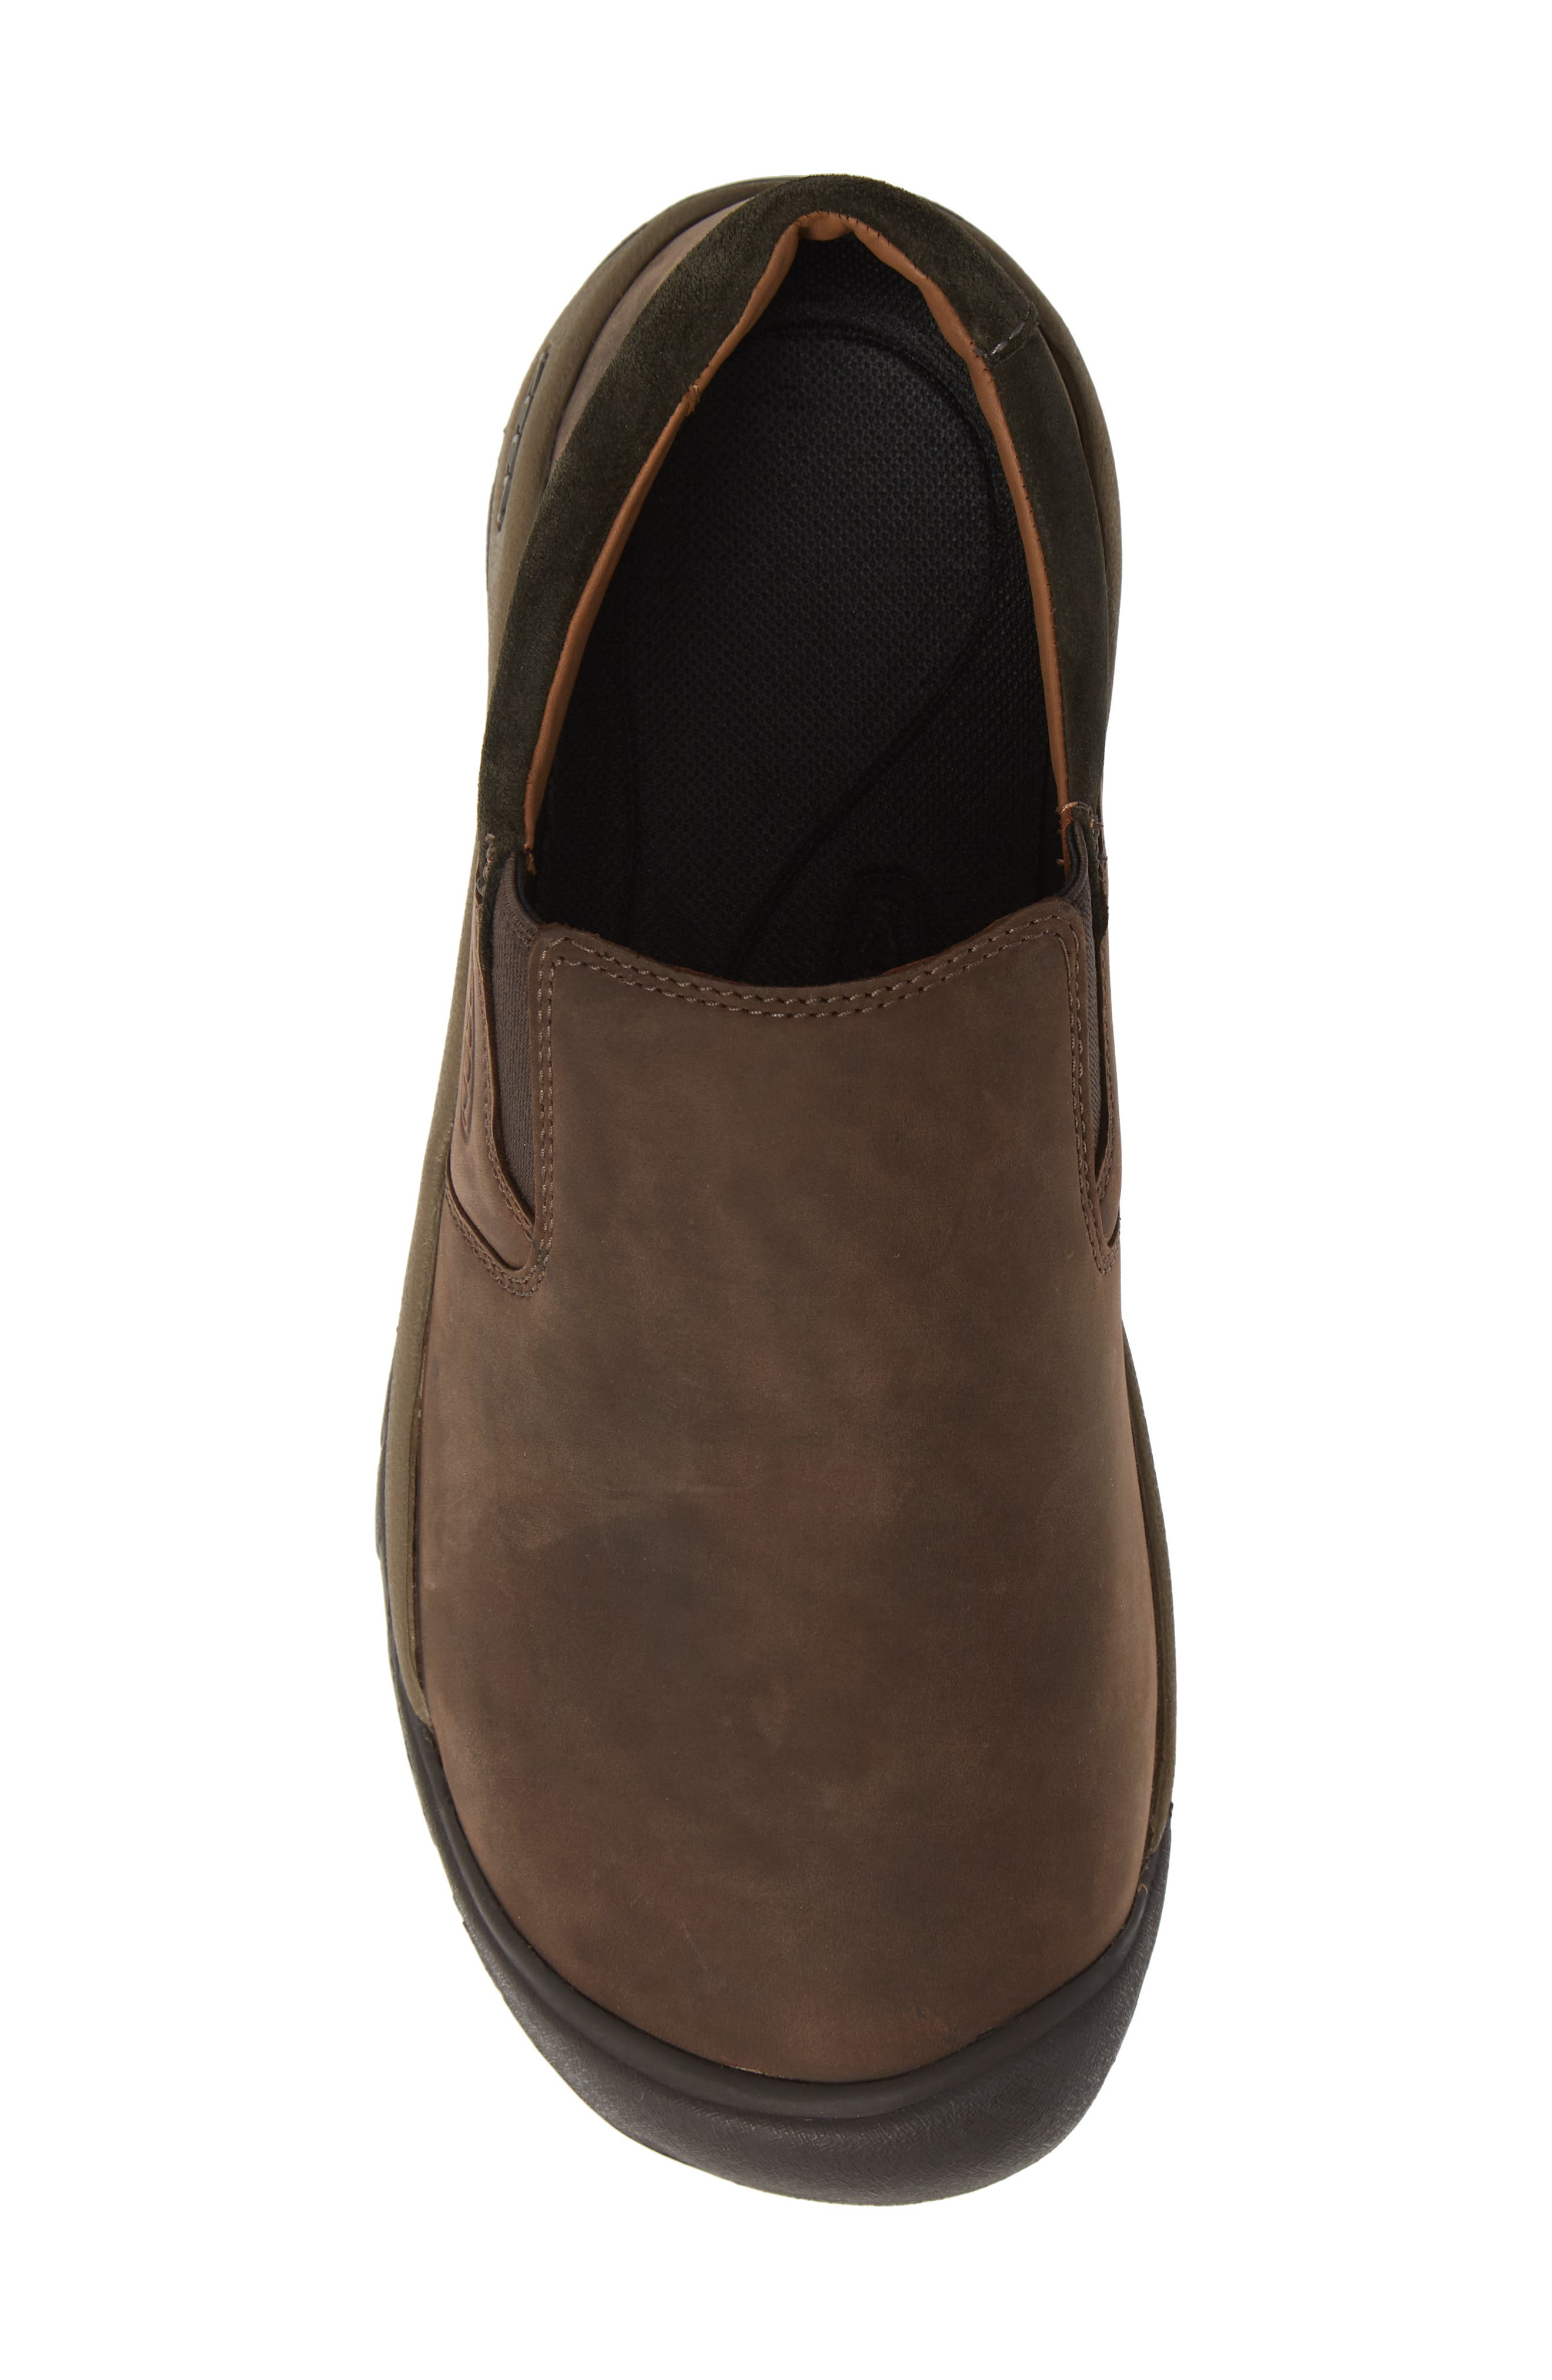 KEEN,                             Austin Water Resistant Slip-On Sneaker,                             Alternate thumbnail 5, color,                             CHOCOLATE BROWN/ BLACK OLIVE